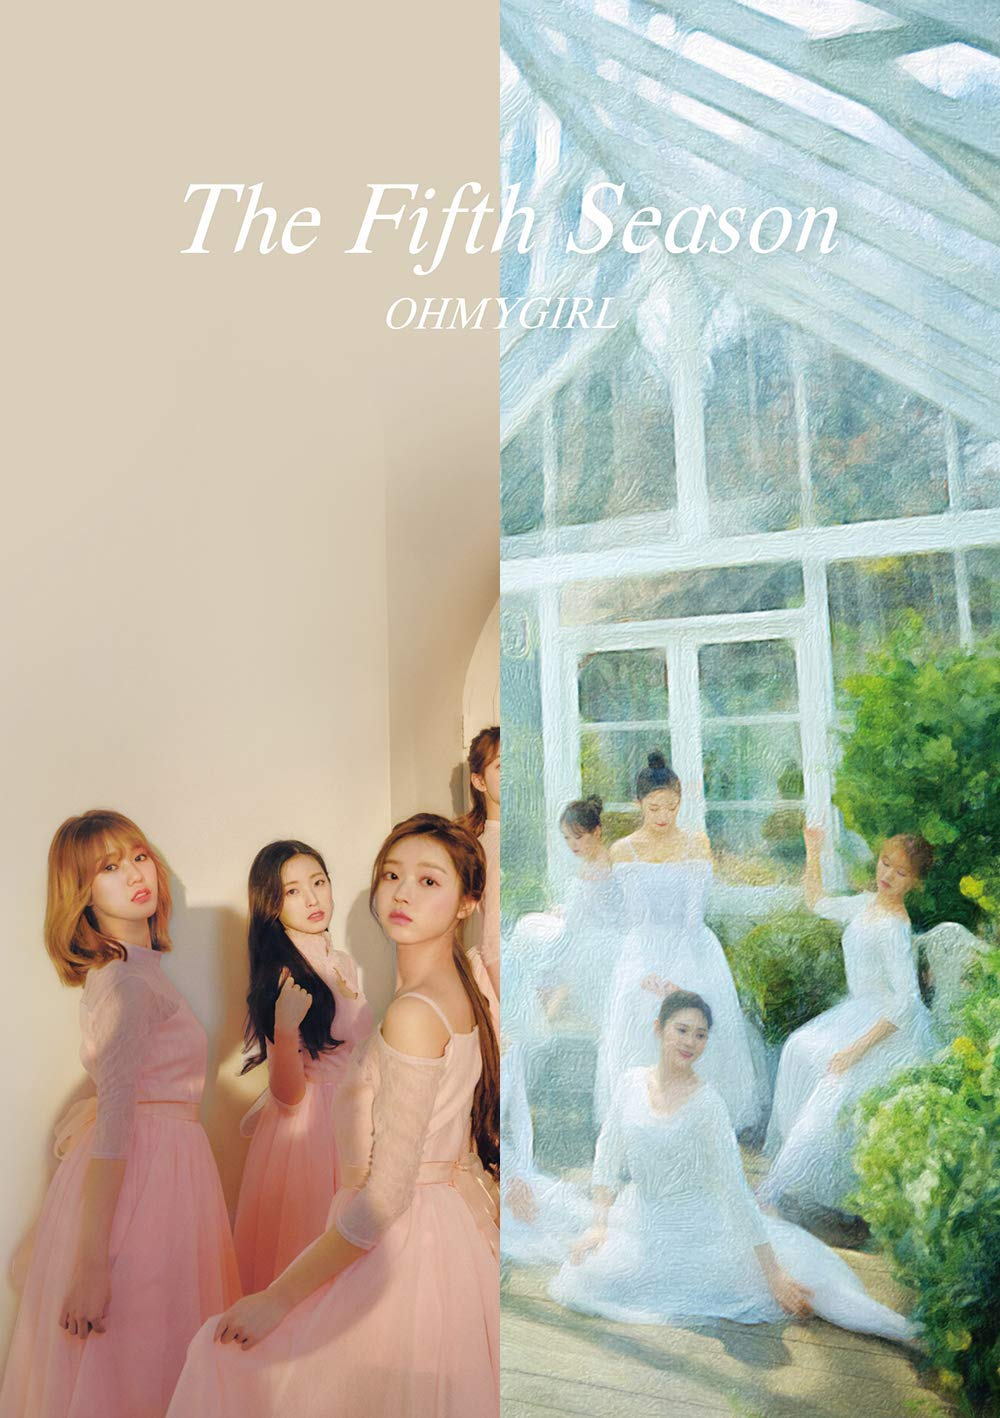 KPOP Oh My Girl - 1st Regular Album, The Fifth Season, Drawing + Photography Cover all versions Set, 2CD + 2Photobooks + Photocards + 2Museum Tickets + 2POP-UP Cards + 2Folded Posters by WM Ent